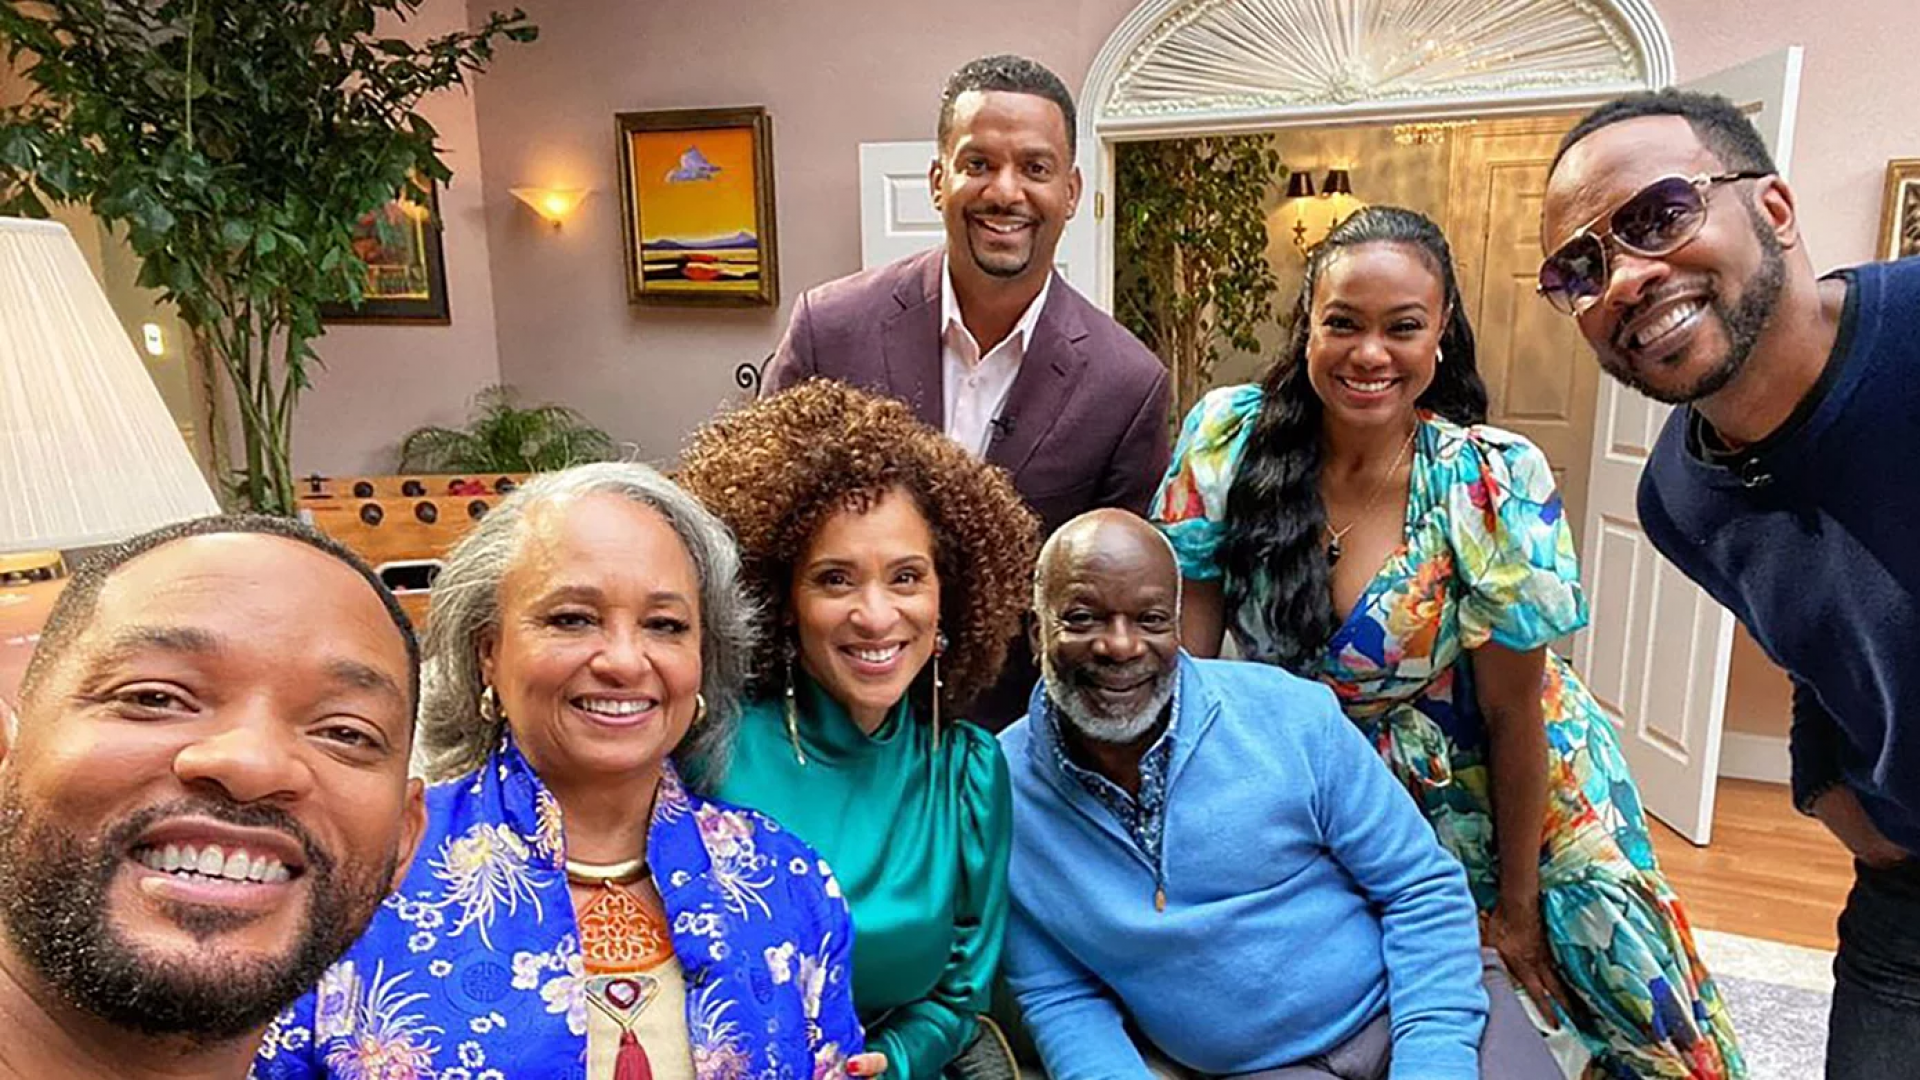 7 Things We Learned From the 'Fresh Prince of Bel-Air' Reunion